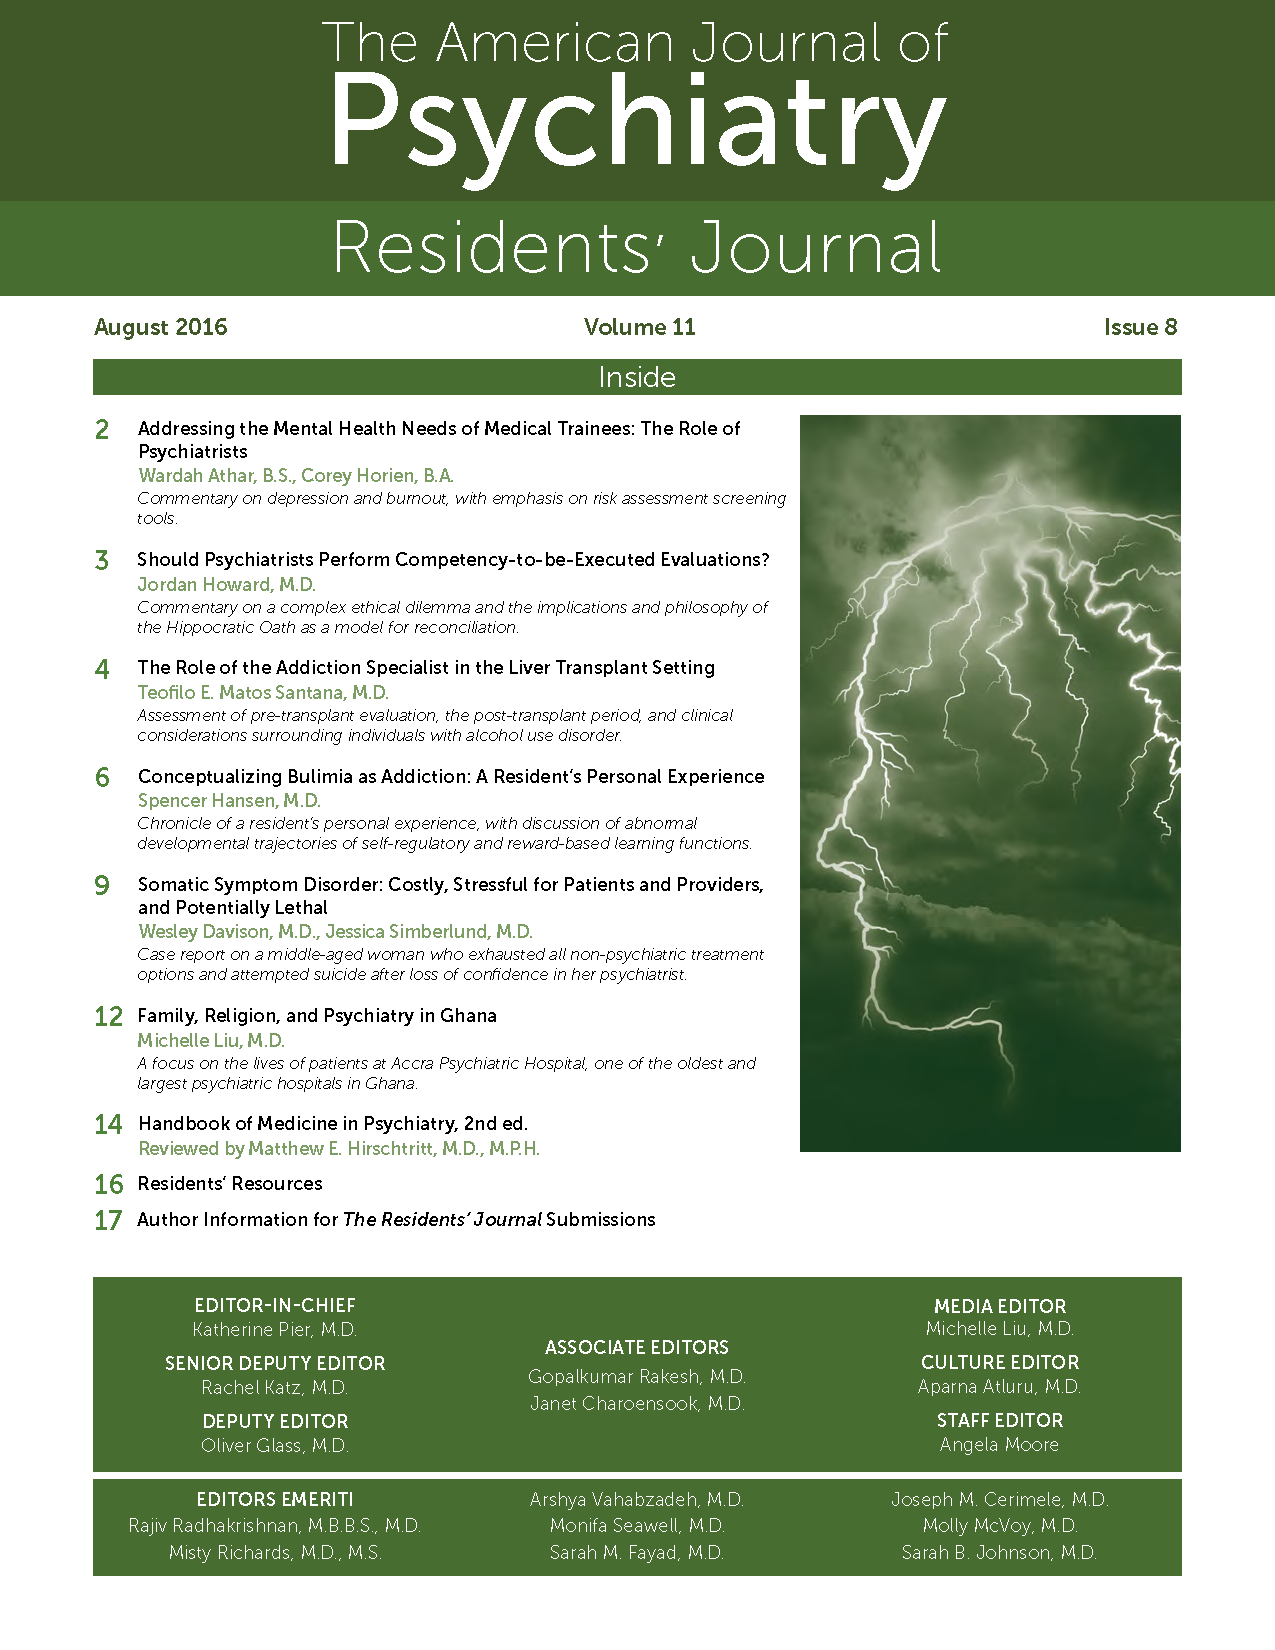 Review of systems for psychiatric patients - August 2016 Residents Journal